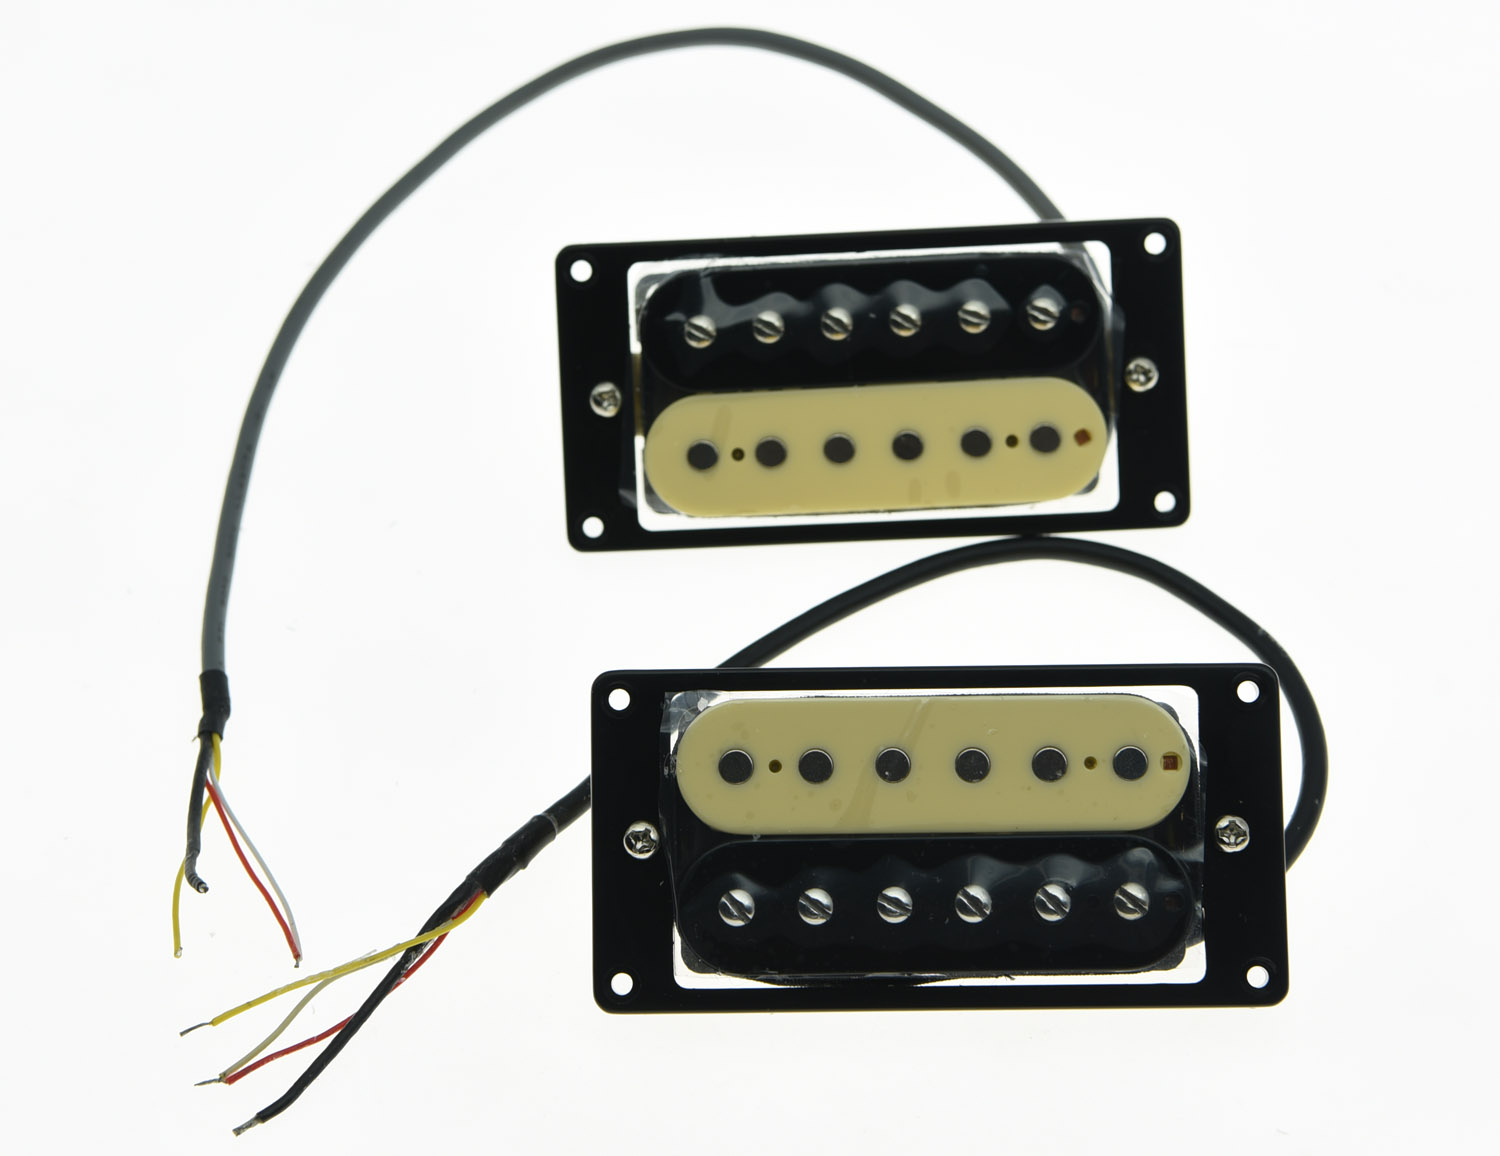 Set of 2 Zebra 50's Vintage Sound Pickups Alnico V Humbucker Neck&Bridge Pickup new humbucker pickup set gold four conductor wires alnico v pickups